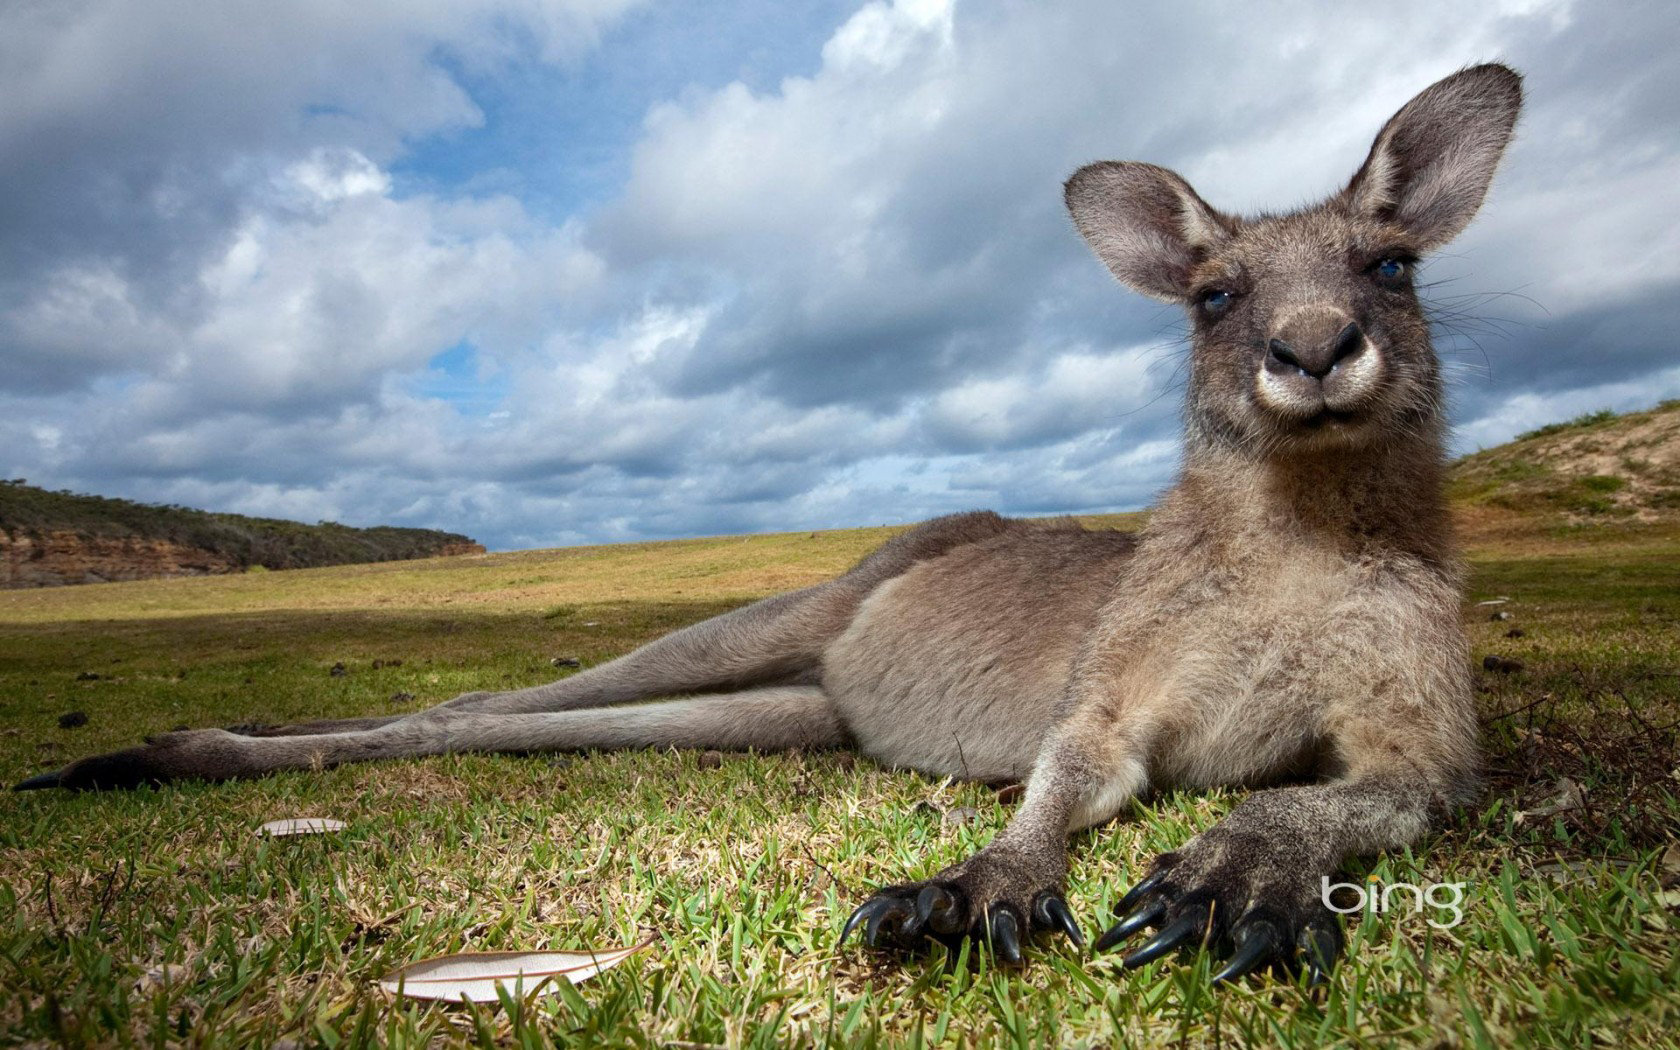 Awesome Kangaroo free wallpaper ID:122506 for hd 1680x1050 desktop